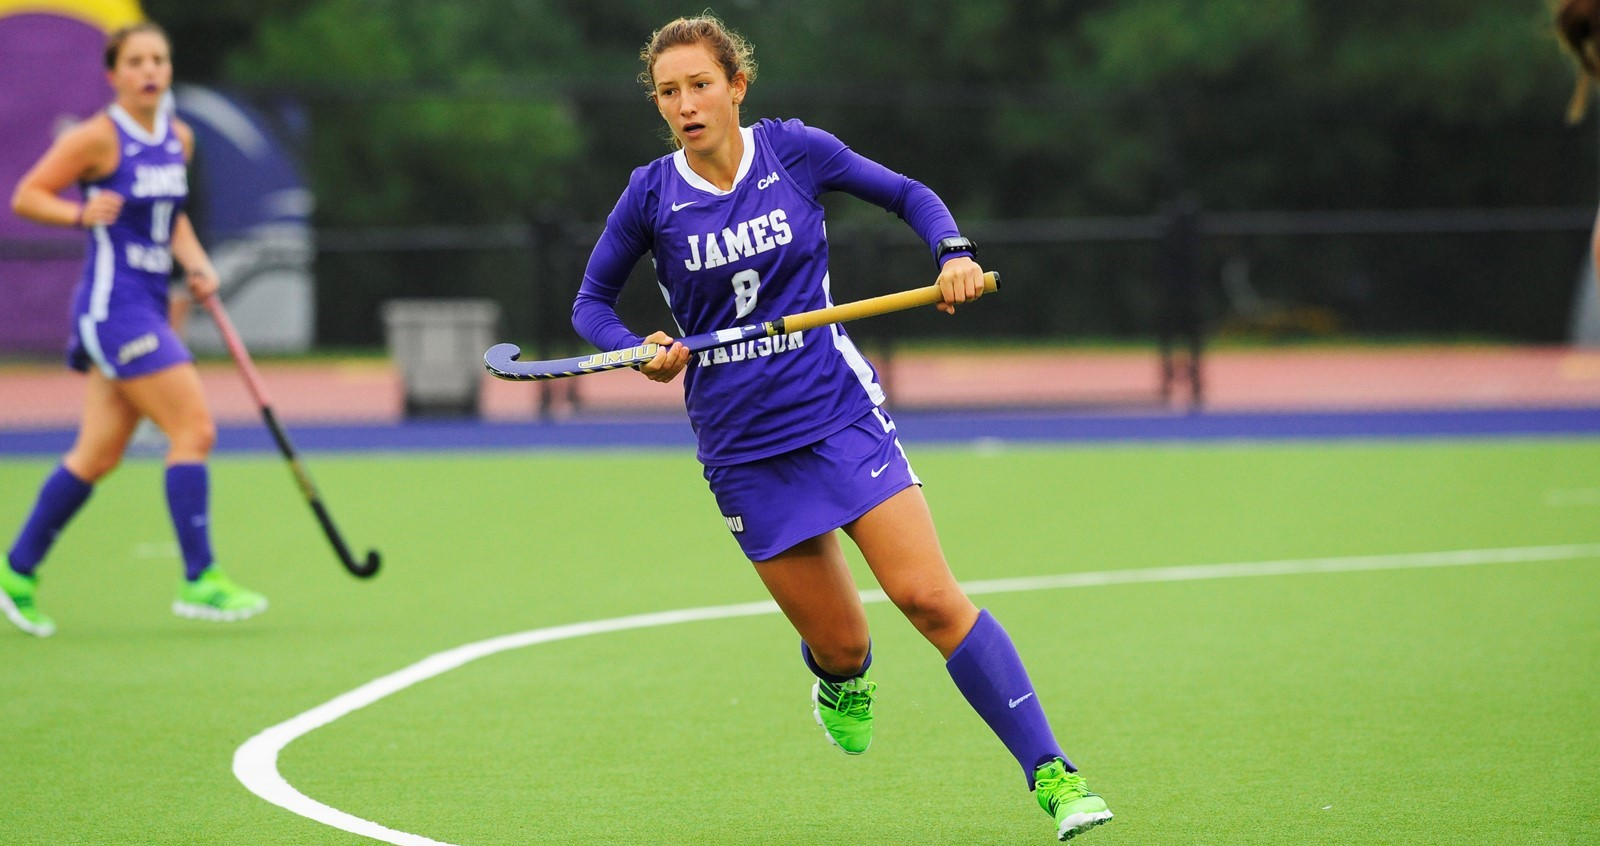 Field Hockey: Dukes Douse Dragons, 4-0, to Remain Undefeated in CAA Play